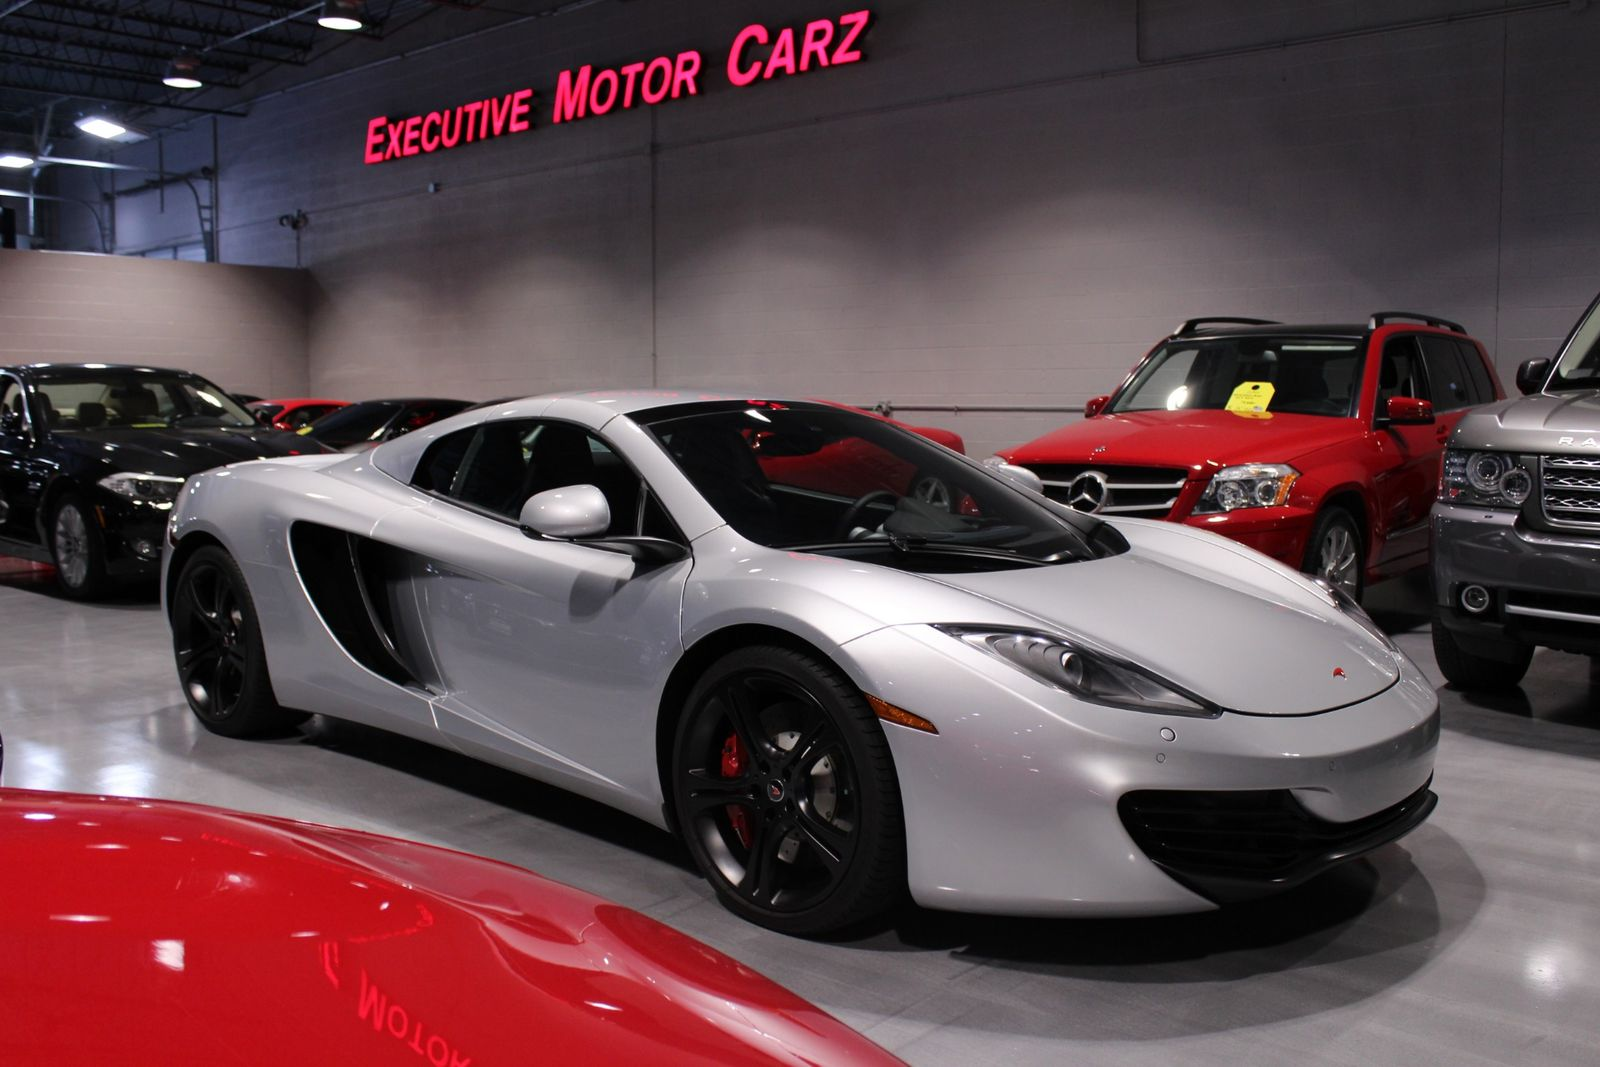 2013 Mclaren Automotive MP4 12C SPIDER Lake Forest IL Executive Motor Carz  In Lake Forest ...